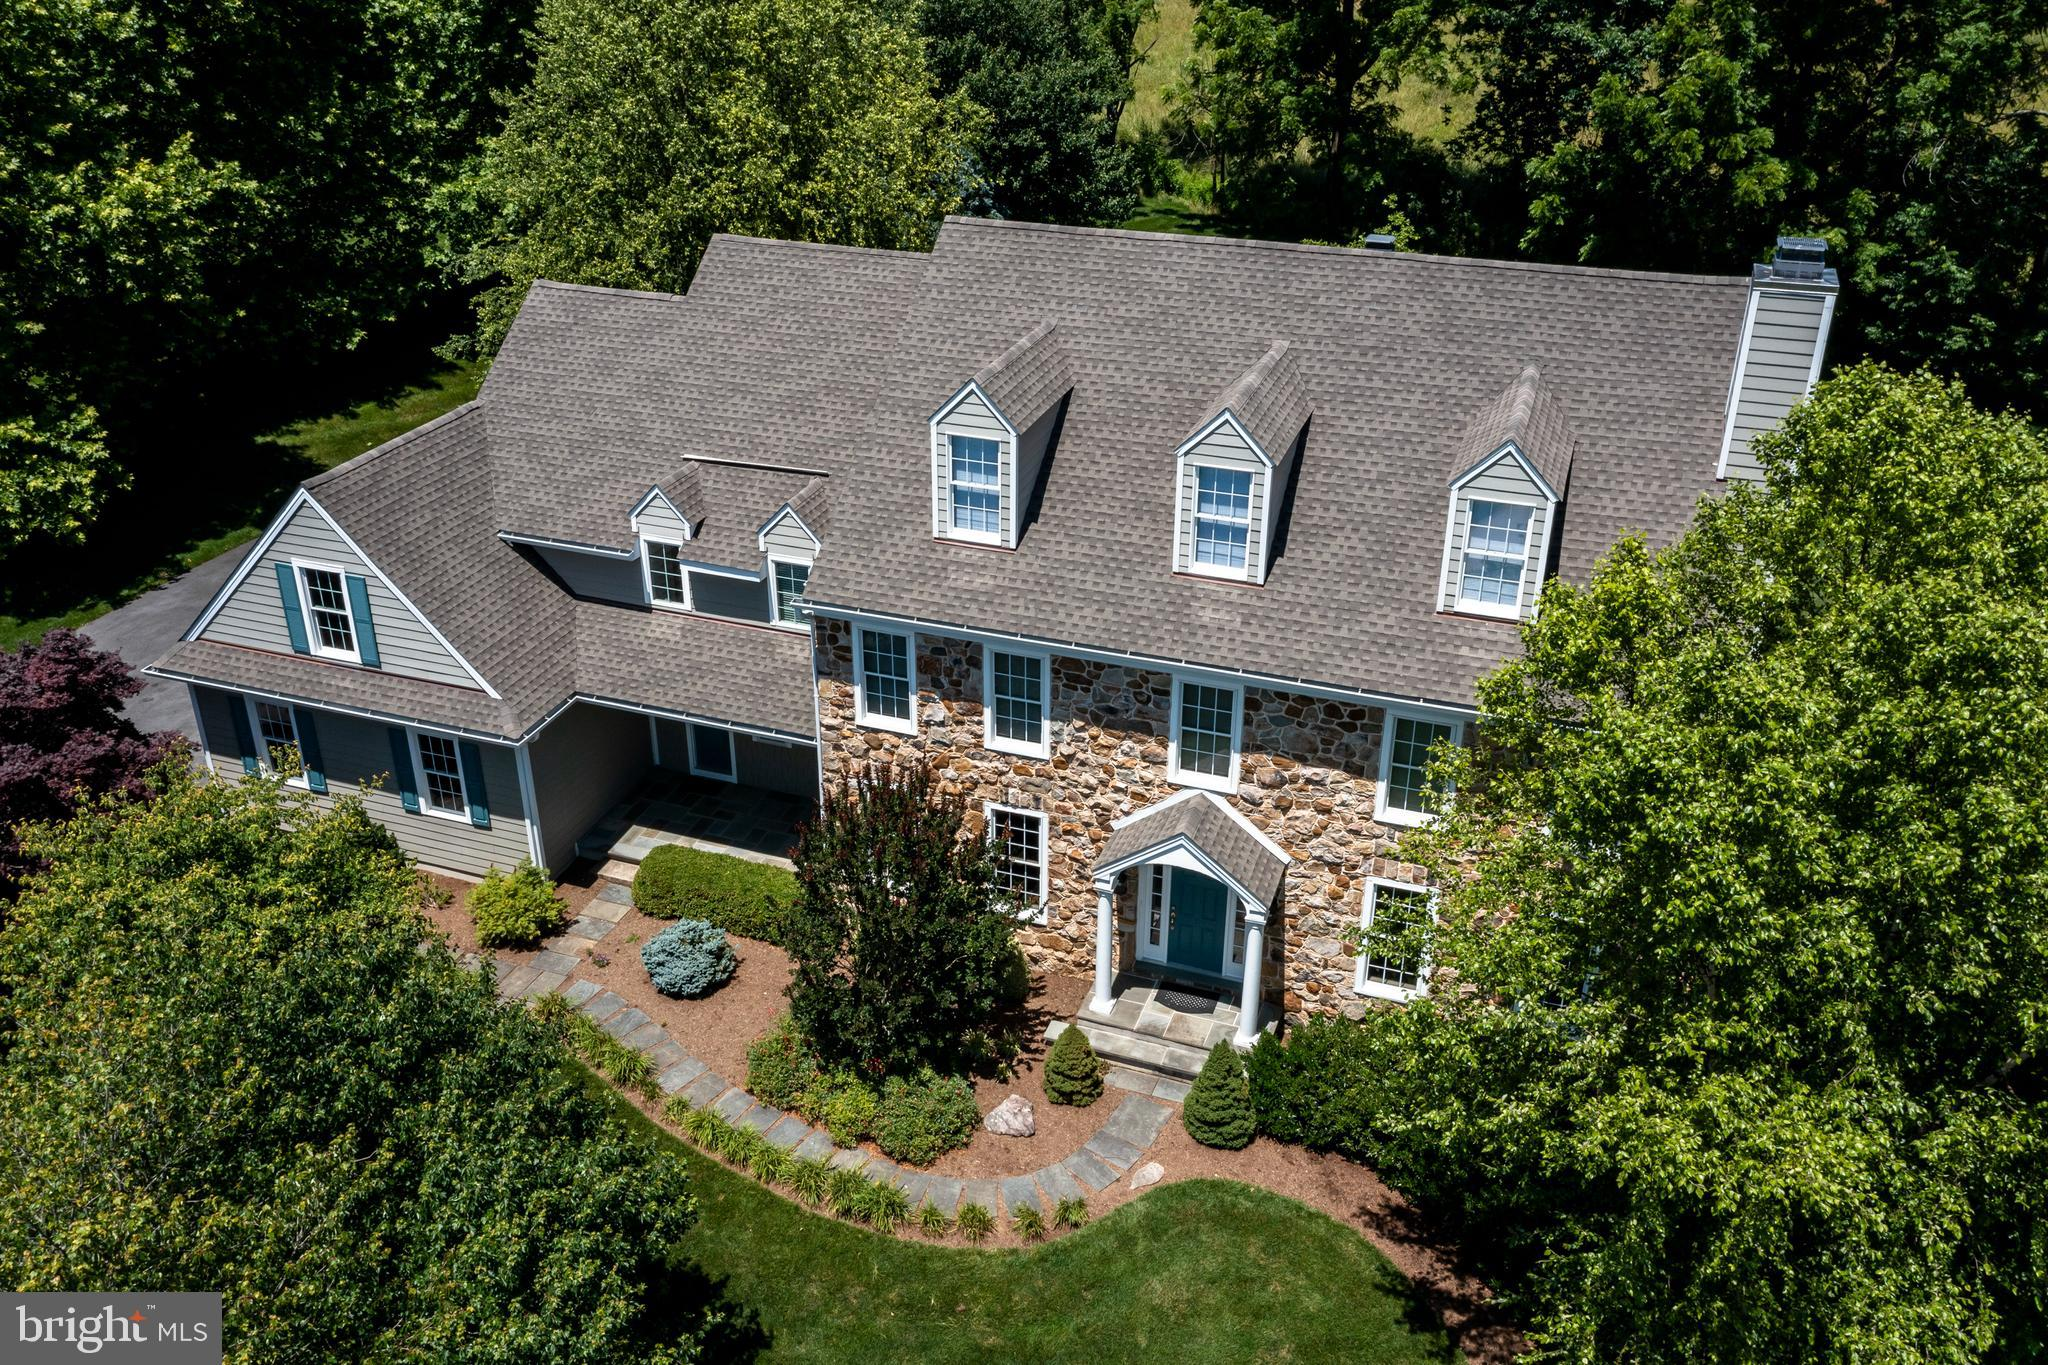 Welcome to 17 Peale Drive   the very best of Chester County – town & country!  Built in 2003, this modern traditional, stone-front, colonial is located on a level cul-de-sac lot in Olmsted that feels like a tranquil park setting - with the perfect mix of open lawn, deck, patio, evergreen and shade trees.  You can choose to enter through a 3-car, turned garage, or through the side porch into the mudroom and laundry area – which has gas and electric options, and bead-board millwork with a chair rail.  Greet guests under the covered front porch and usher them into the grand foyer with hardwood floors, crown molding, and coat closet.  Off the foyer, a spacious powder room includes a private water closet.  The large formal living room was bumped out by the builder, and features crown molding, wall-to-wall carpeting, recessed lighting, and a gas fireplace.  The first-floor office has French Doors with a transom window, wall-to-wall carpeting, recessed lighting, and two sets of built-in cherry cabinets and shelves.  This attention to detail is carried on in the dining room with hardwood flooring, a chair rail, crown molding, and chandelier.  In the kitchen you'll also find hardwood flooring, farmhouse white and cherry cabinets with glass front accent doors, a center island with overhang for bar seating, granite countertops, stone backsplash, gas cooking on the range with a double oven, pendant and recessed lighting, a roomy eat-in area for casual dining and wet bar for entertaining ease.  The sunroom is directly adjacent to the kitchen, also with hardwood flooring, large windows, and a sliding door that opens to the TREX deck, walkway, and stone patio complete with a large pergola.  Back inside, the family room has a vaulted ceiling, recessed lighting, wall-to-wall carpeting, and a wood burning fireplace with stone surround.  A back staircase provides convenient access to the 2nd level.  Upstairs, you will find wall-to-wall carpeting in the hall and bedrooms.  The primary 